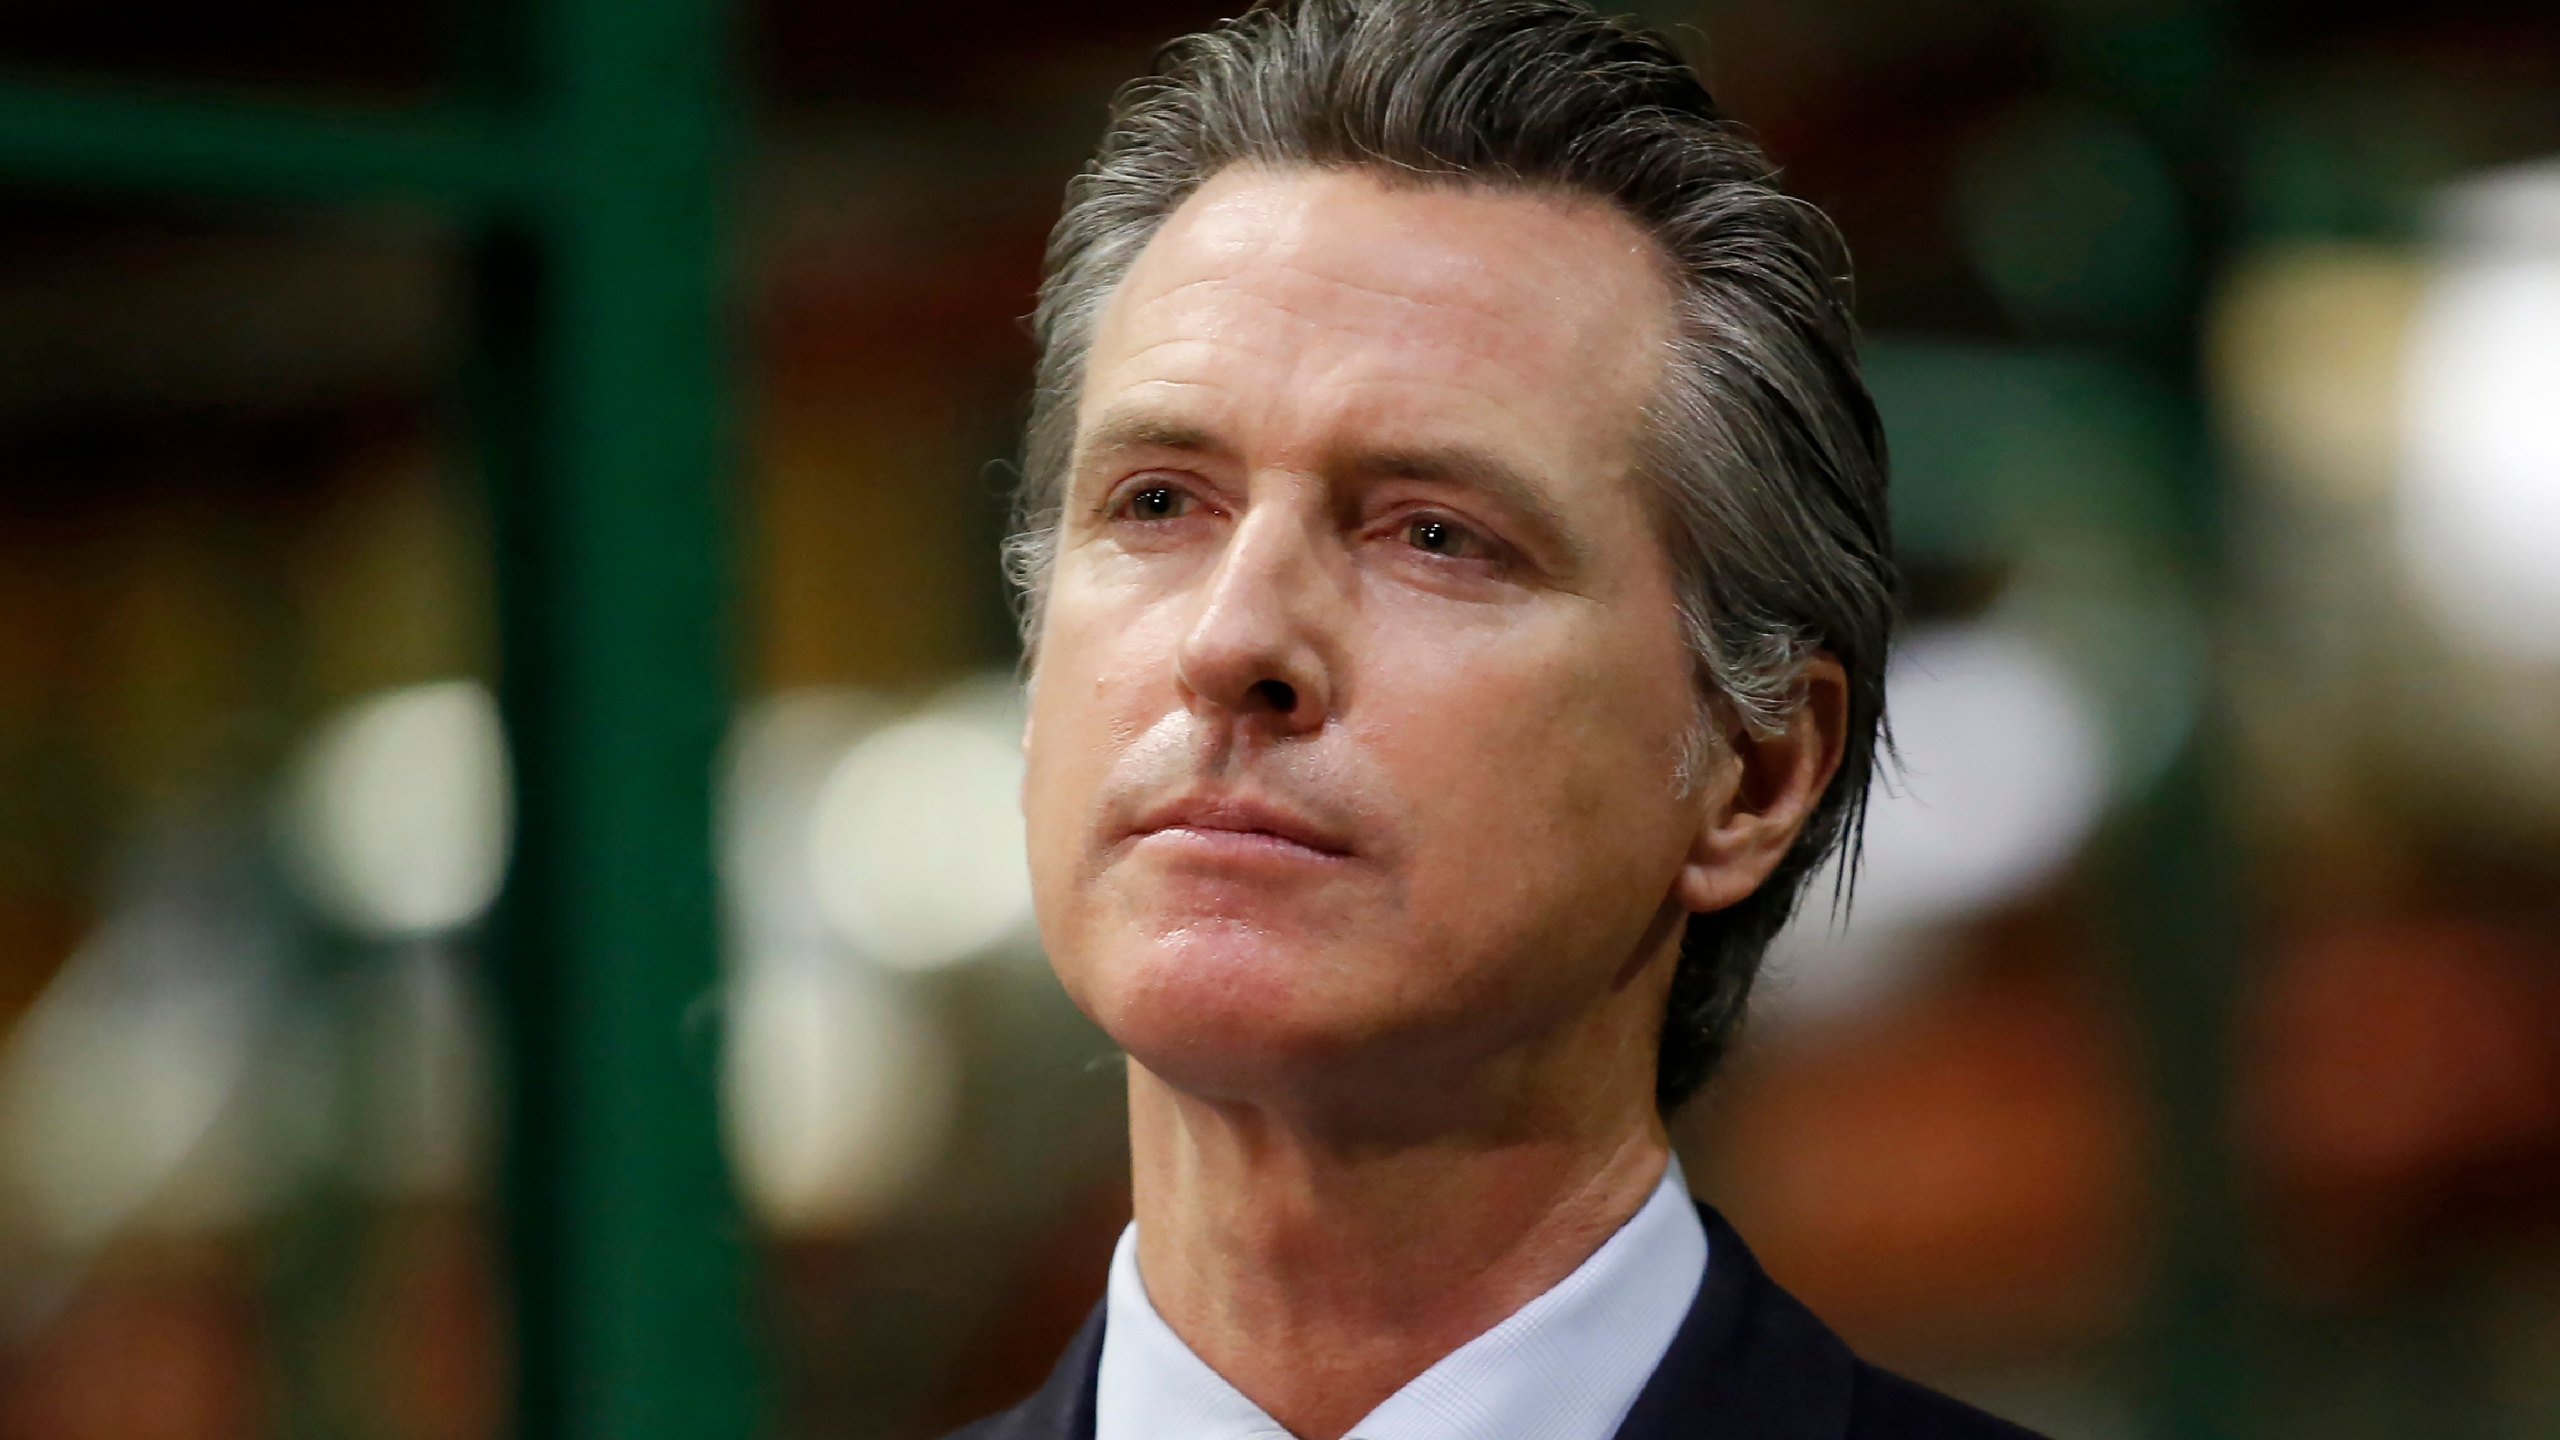 In this June 26, 2020, file photo, California Gov. Gavin Newsom listens to a reporter's question during a news conference in Rancho Cordova, Calif. (AP Photo/Rich Pedroncelli, Pool, File)